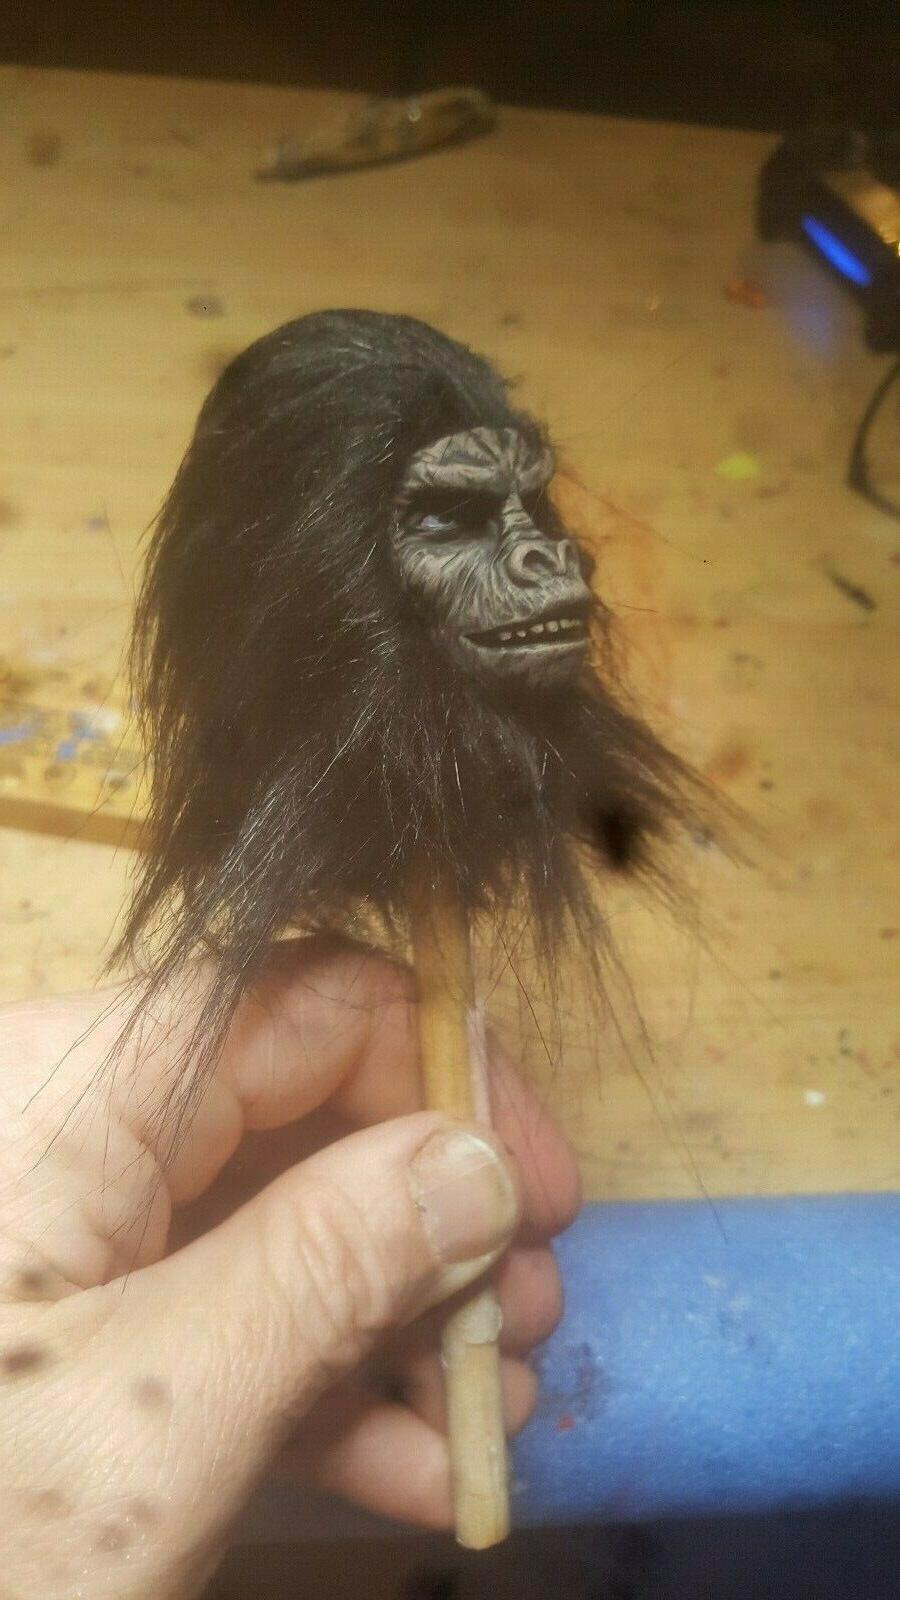 Planet hot toys style rooted ape head 12 1/6